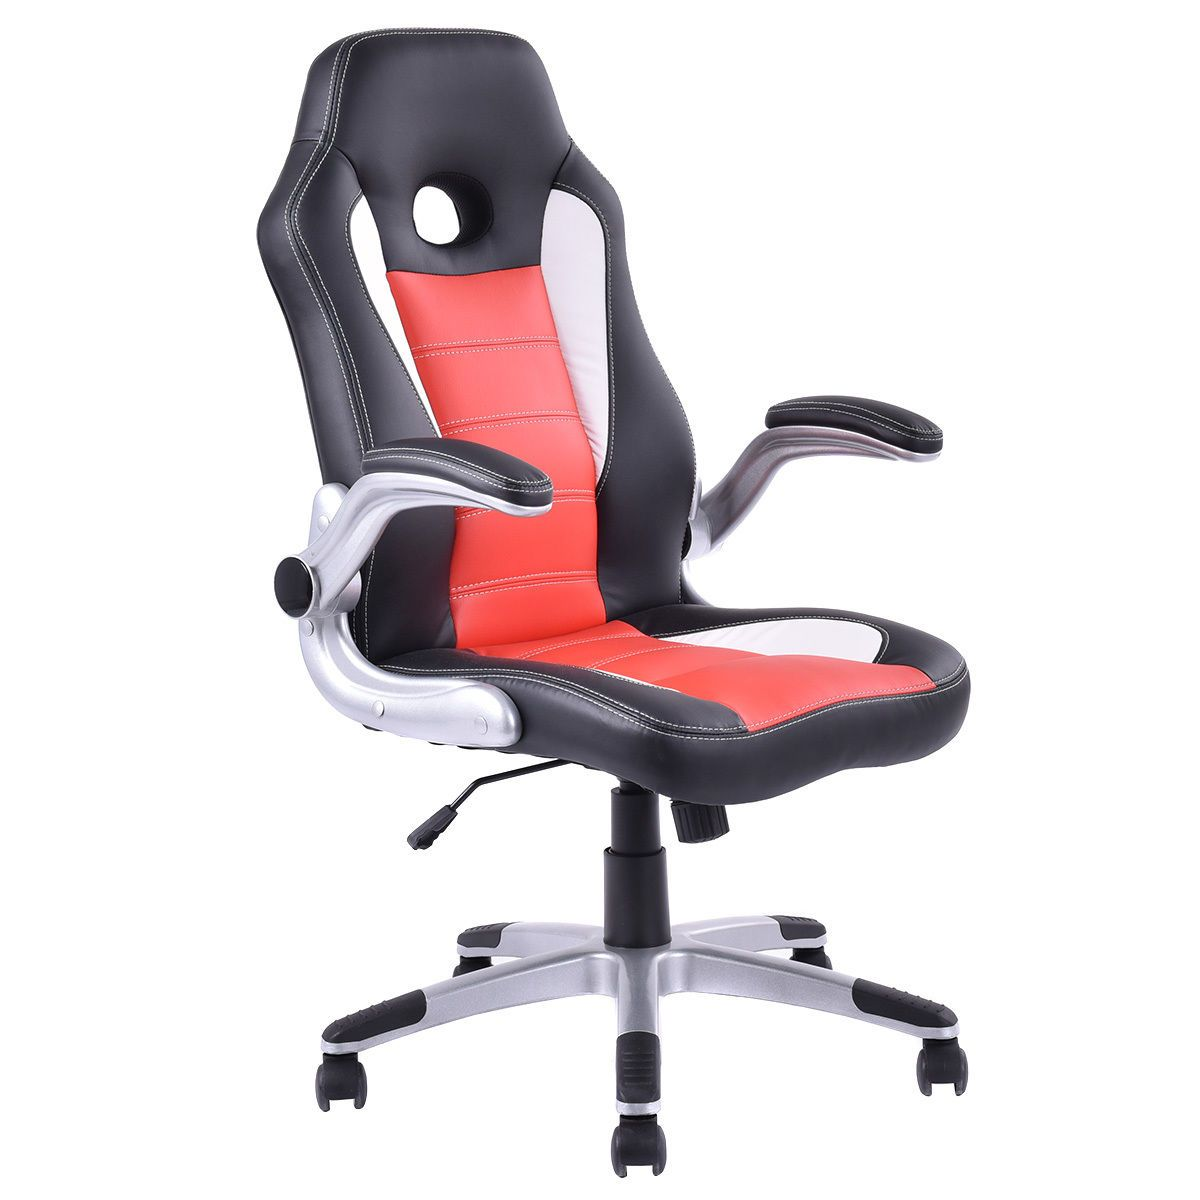 Executive PU Leather Racing Style Bucket Seat Office Chair